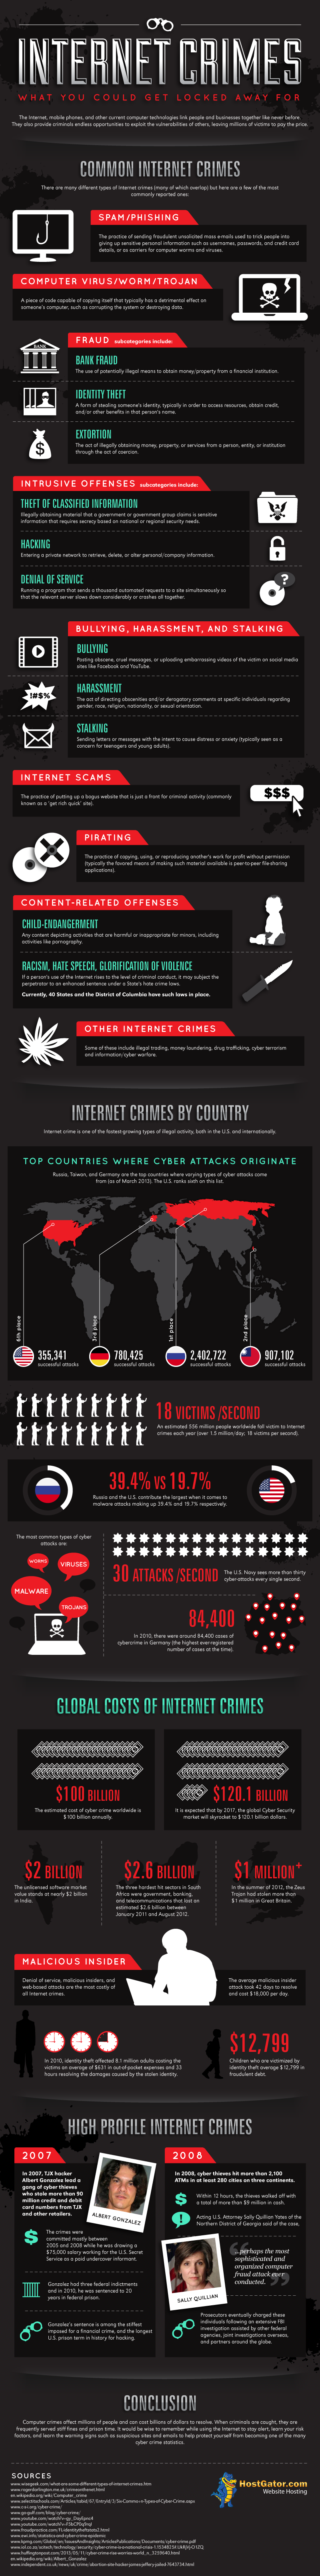 01 Internet-crimes-what-you-could-get-locked-away-for-infographic